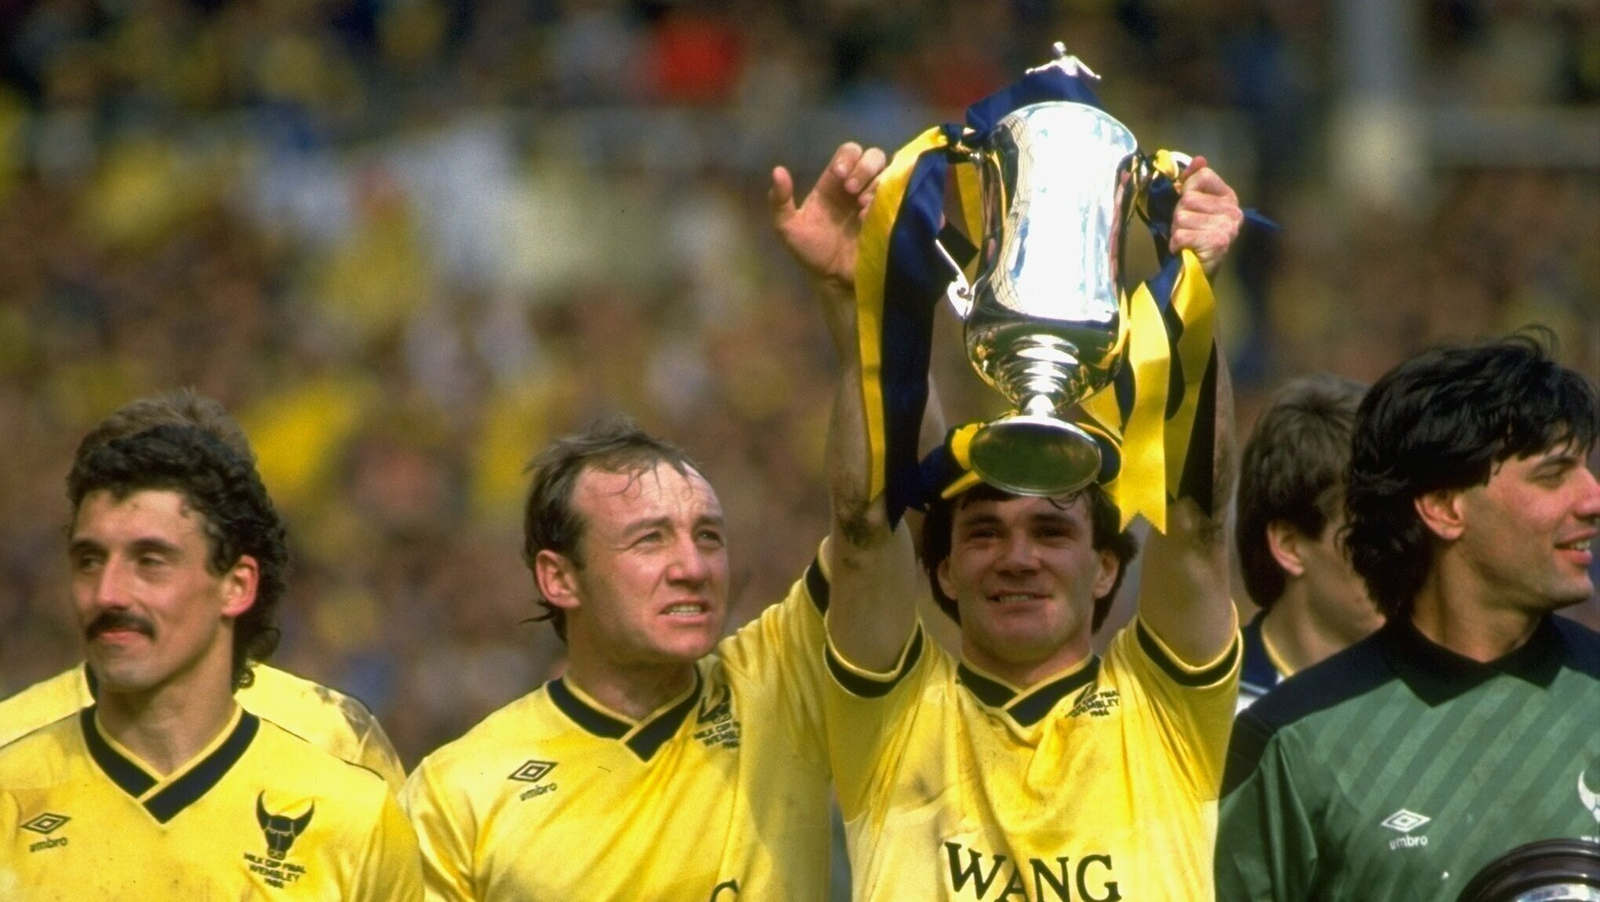 Image - David Langan and Ray Houghton of Oxford United lift that year's League Cup trophy aloft